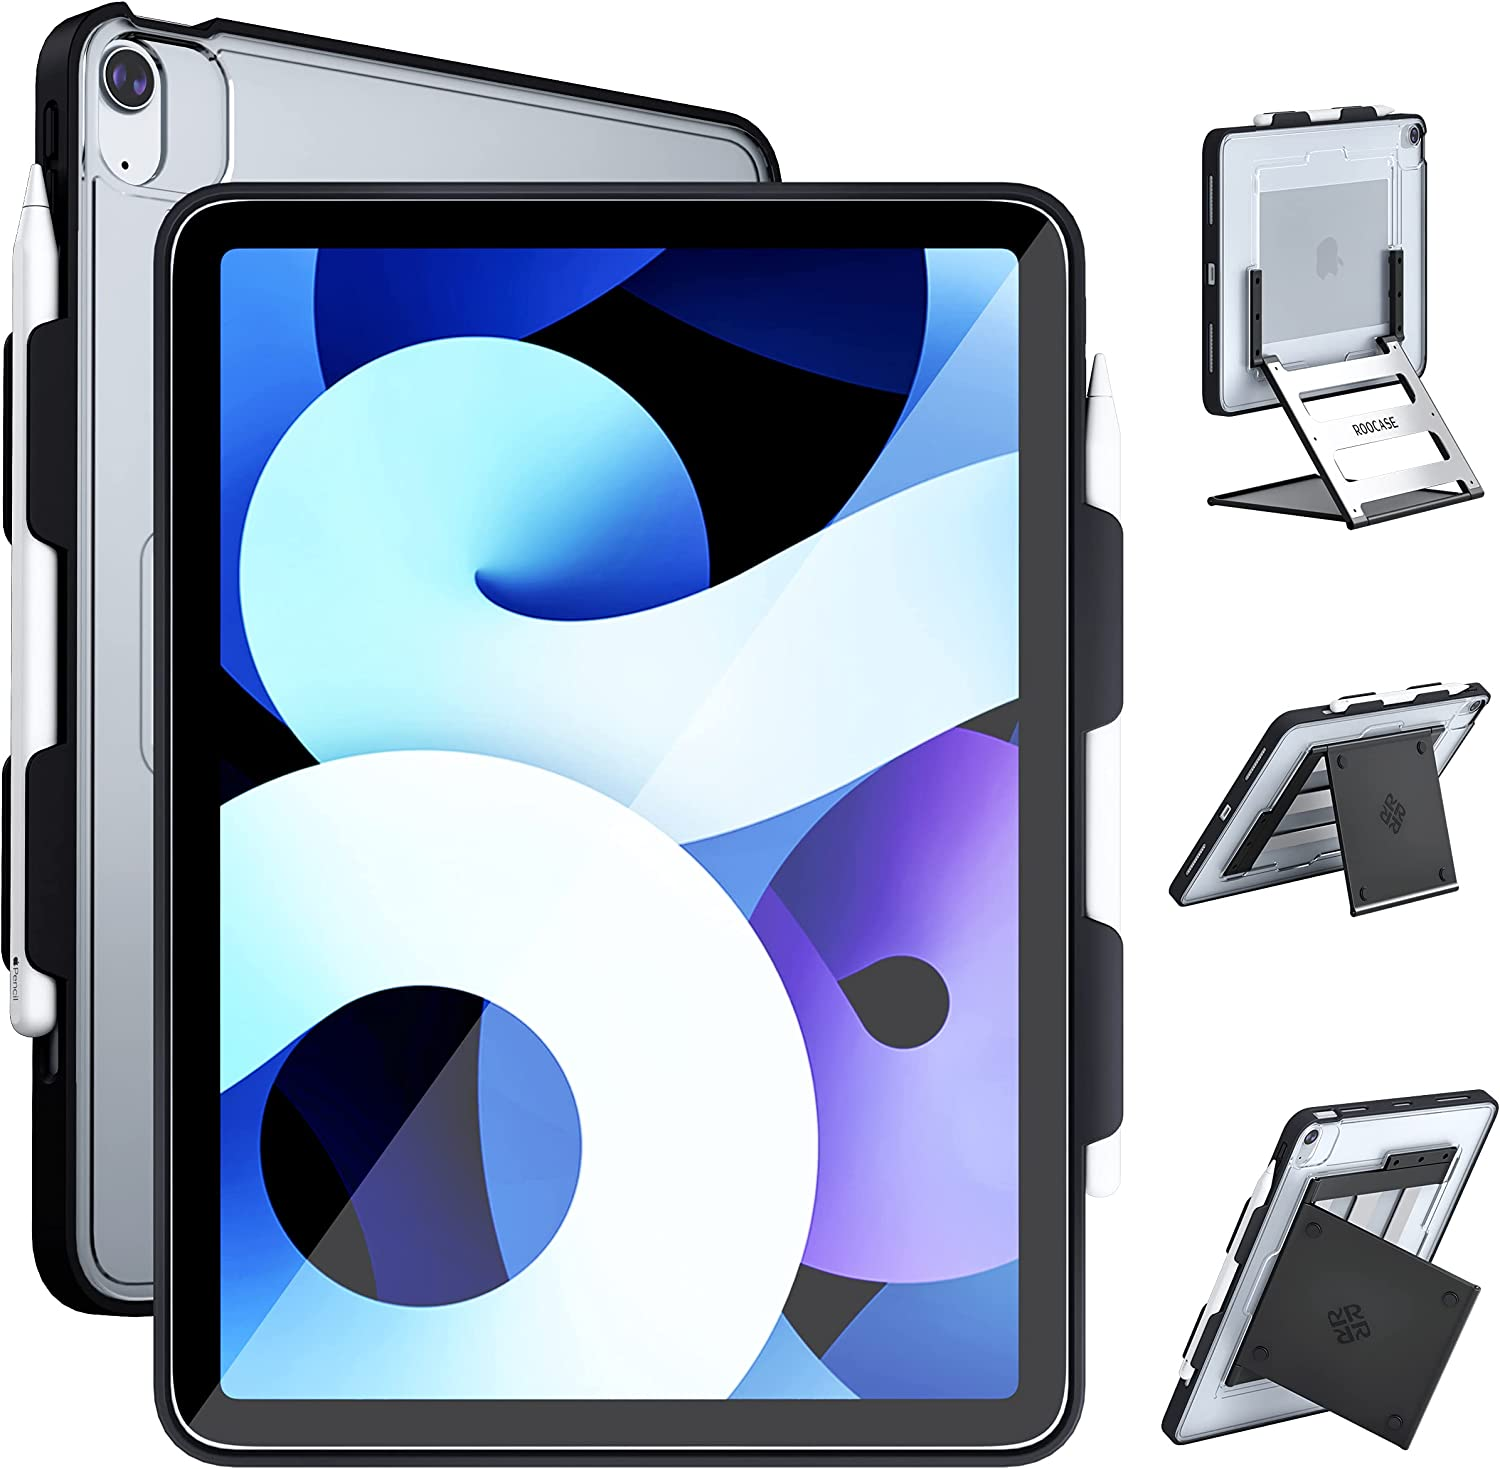 ROOCASE Branded goods Adjustable 2021 iPad 10.9 Inch Stand with Table Case and Over item handling